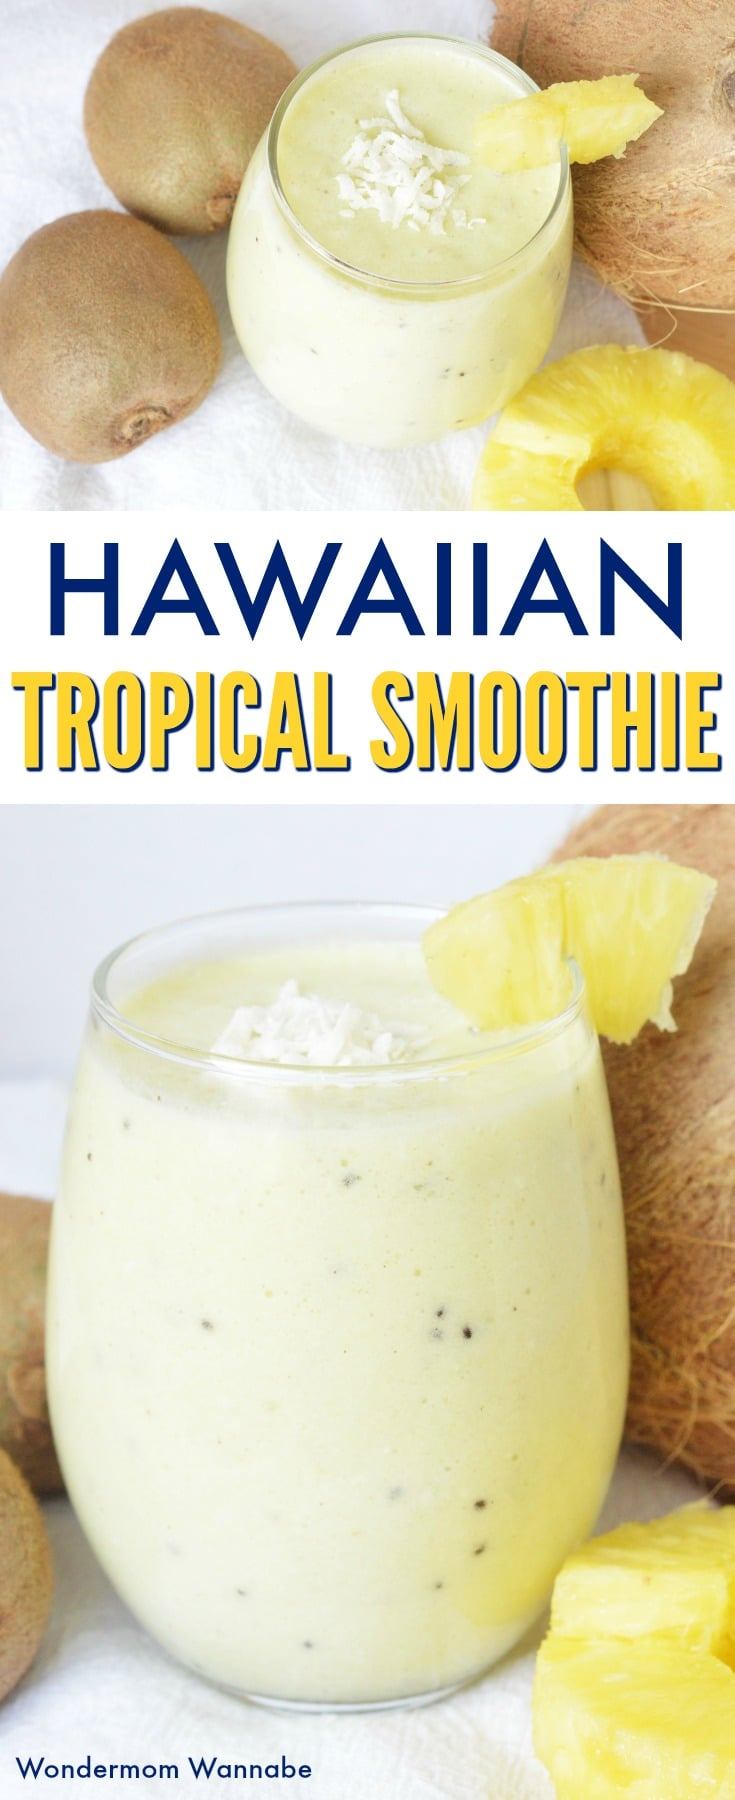 Hawaiian Tropical Smoothie